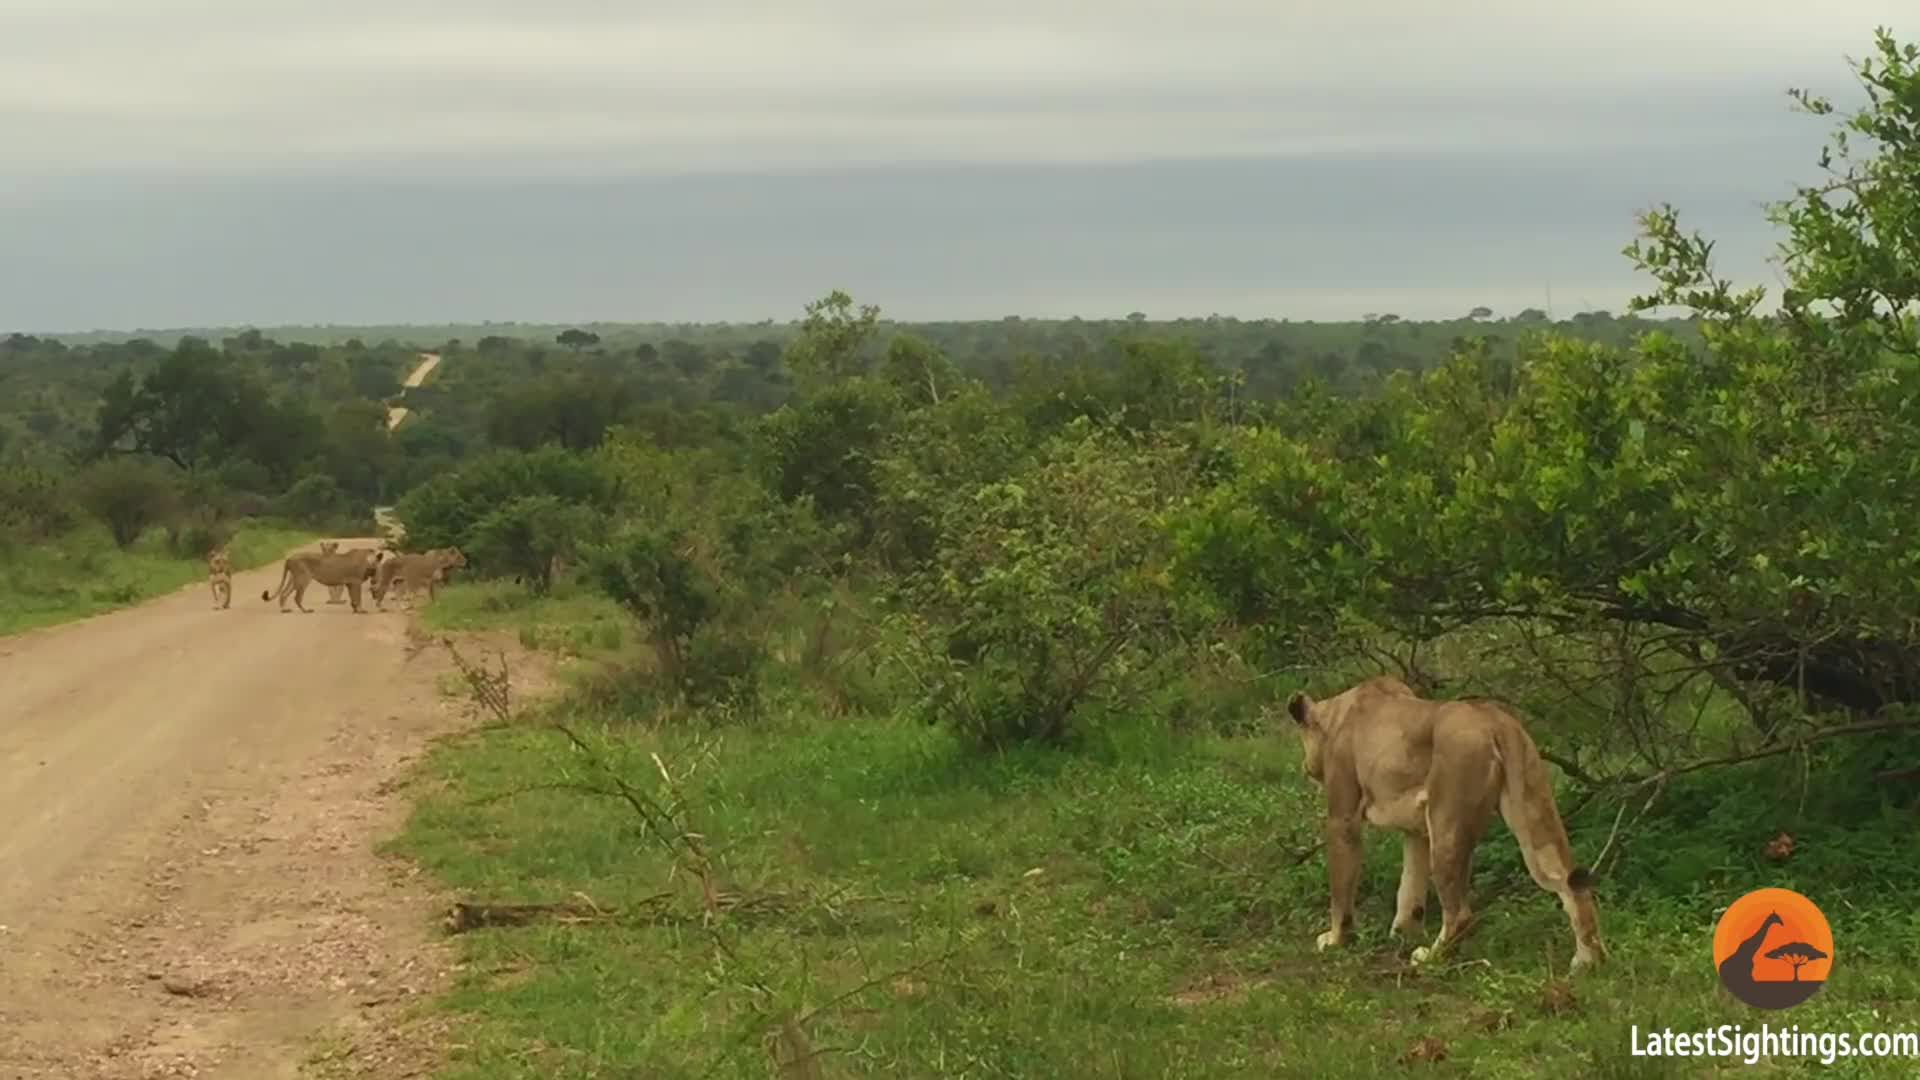 family reunion, lion, lioness, reunited, Family reunion GIFs